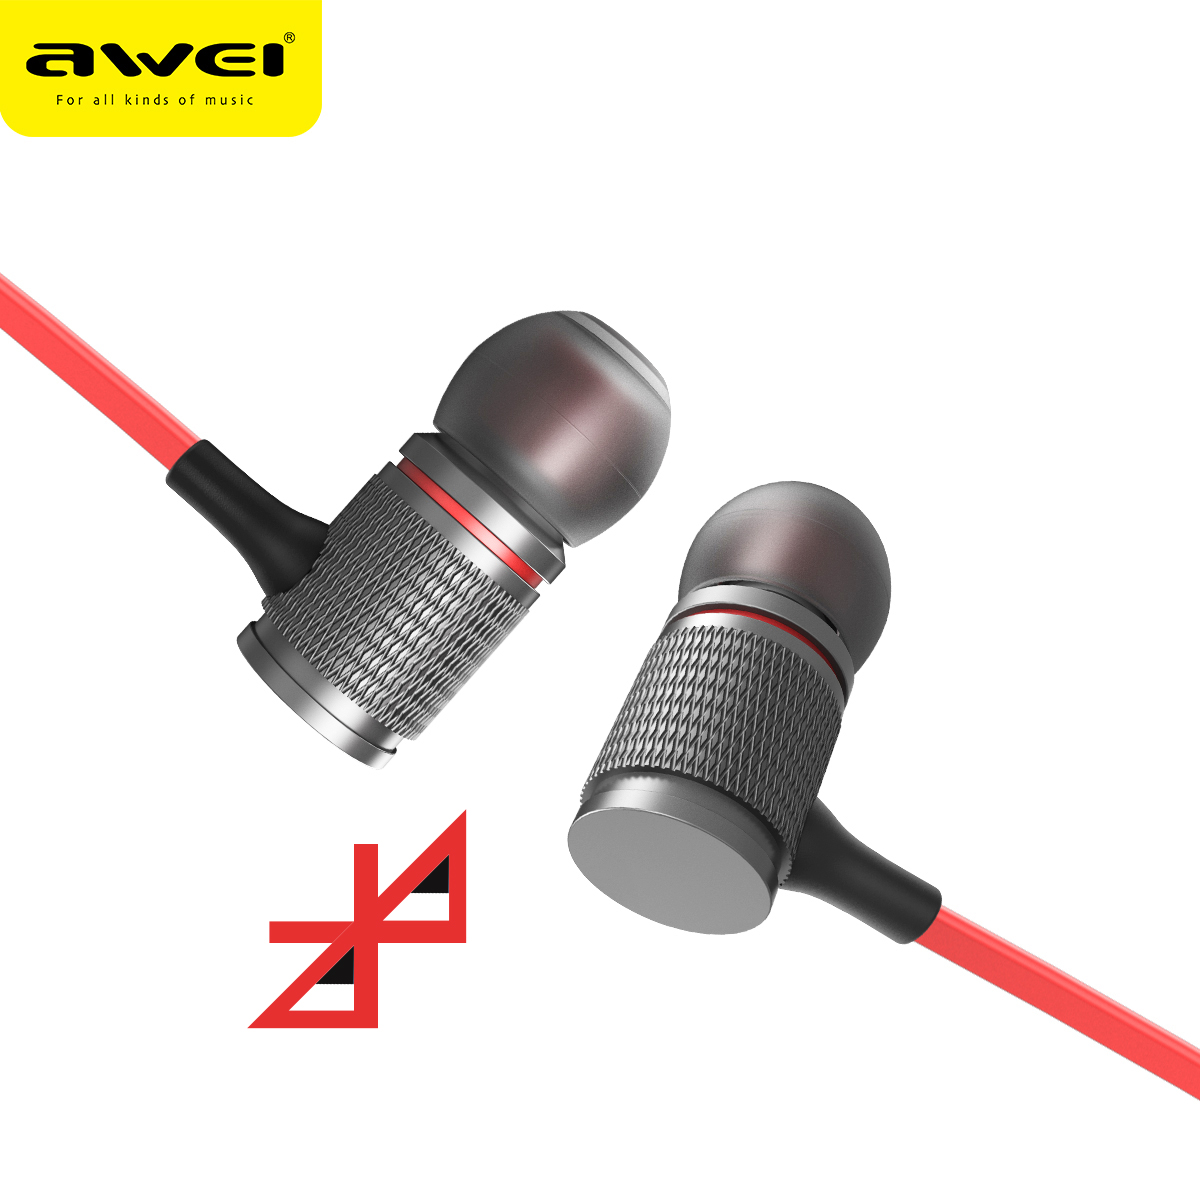 AWEI T12 Bluetooth Headphone Wireless Earphone Headset For Phone Auriculares kulakl k Cordless Earpiece Bluetooth V4.2 Casque 2 in 1 mini bluetooth headset phone usb car charger auriculares micro earpiece kopfhorer wireless earphone for samaung galaxy s7